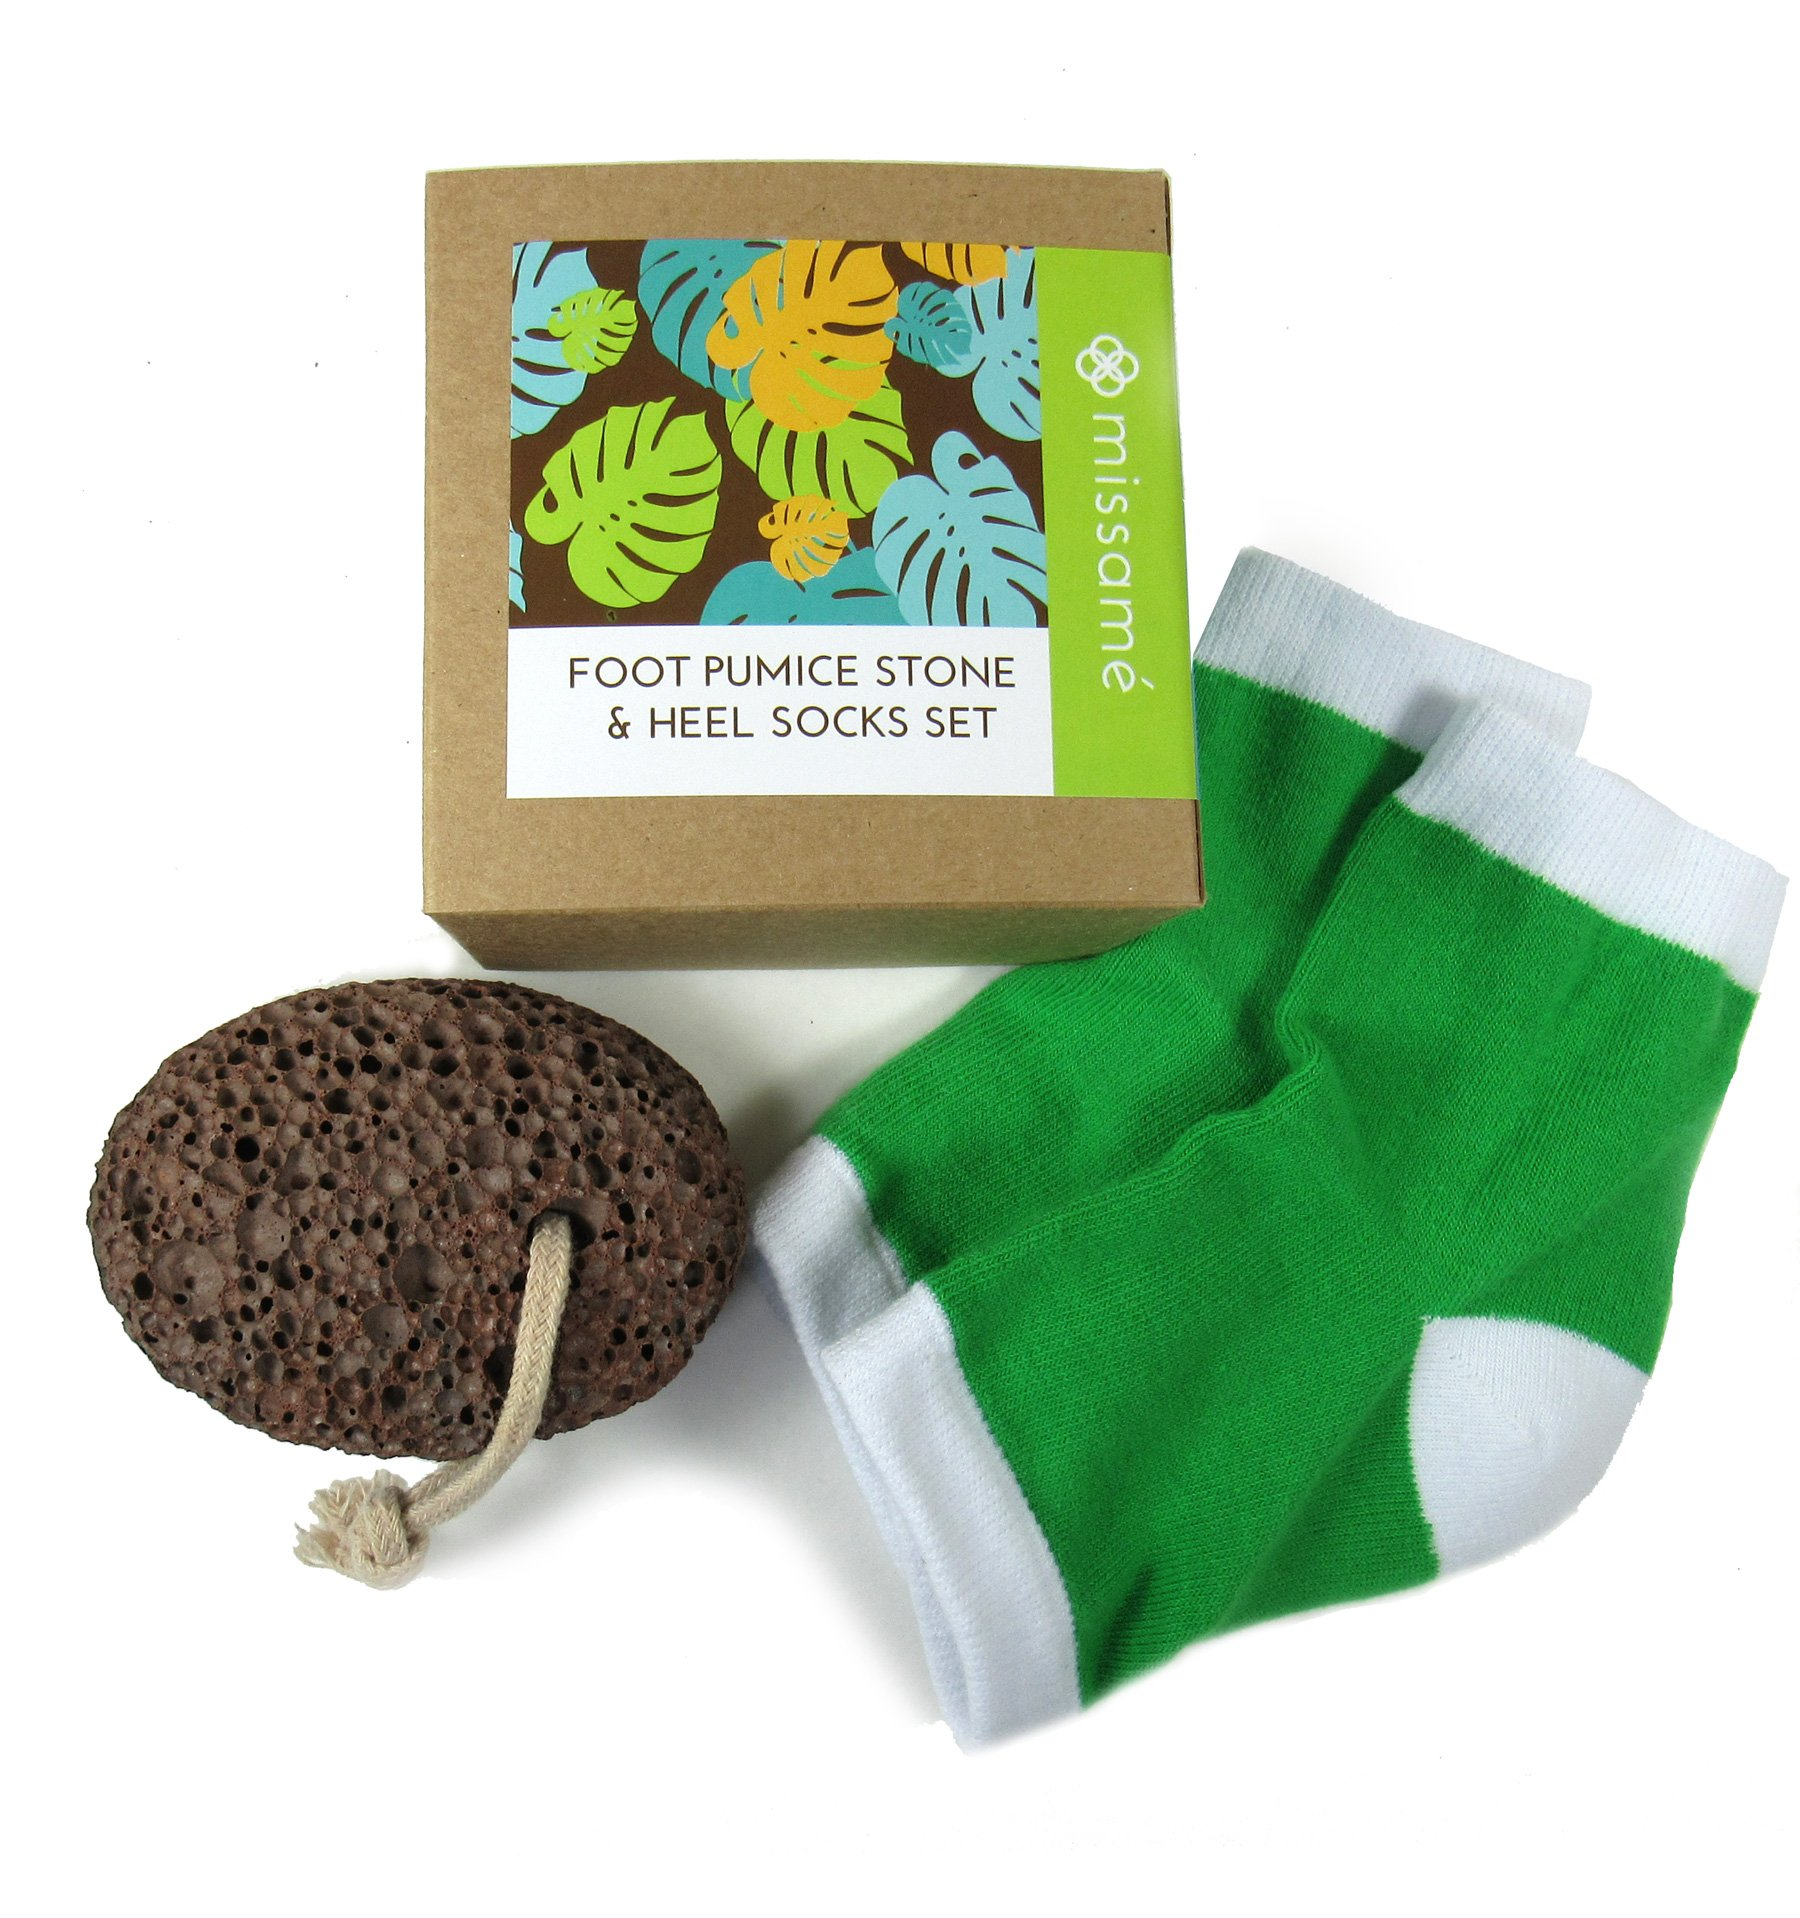 Missamé Rough Pumice Stone For Feet and Moisturizing Gel Heel Socks For Cracked Skin On Foot